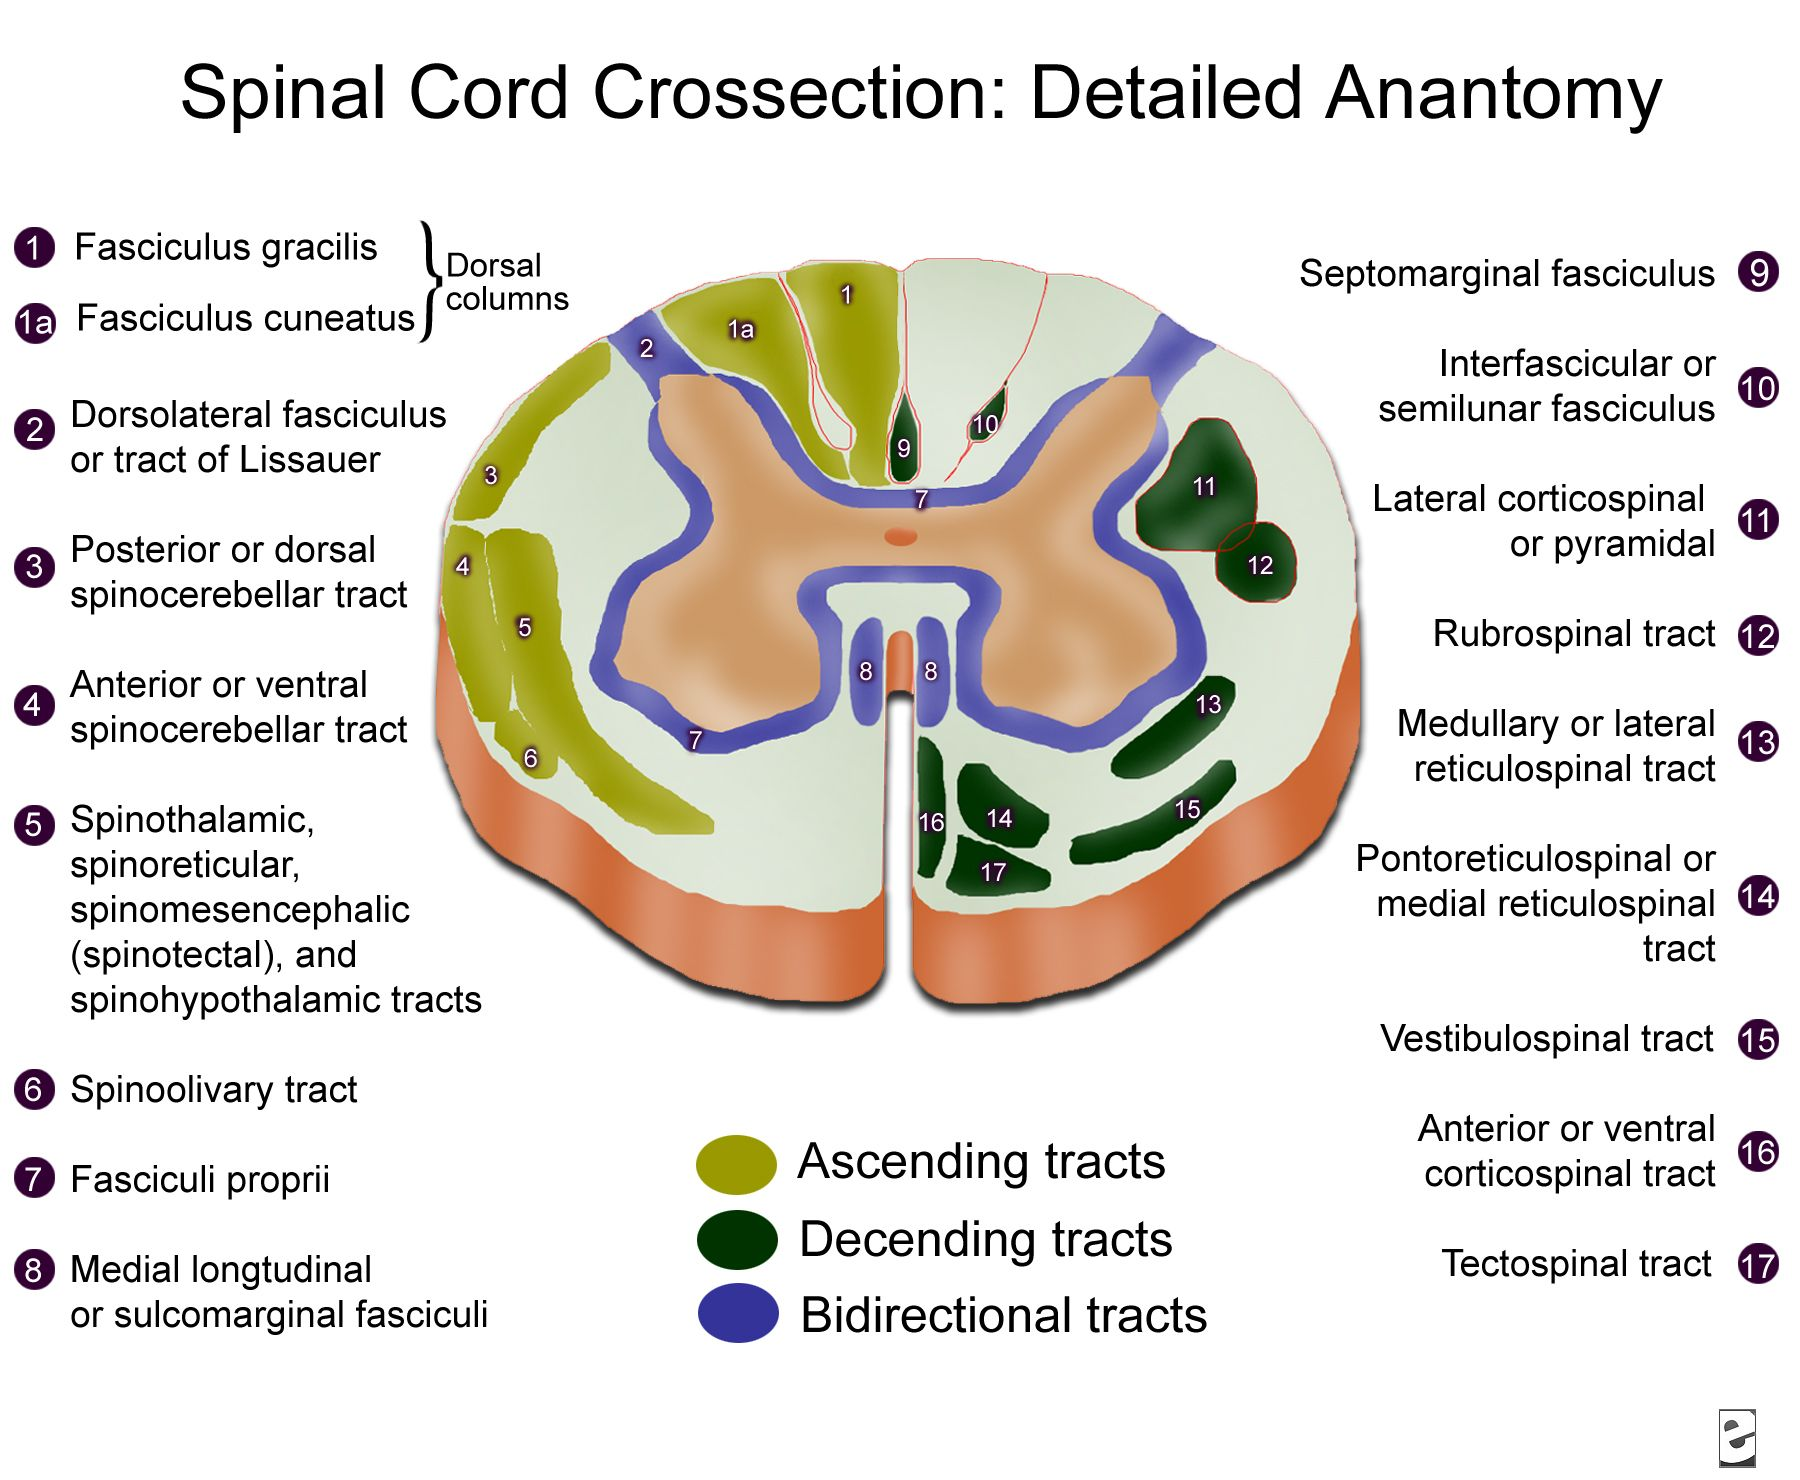 Topographic and Functional Anatomy of the Spinal Cord | Neuro ...